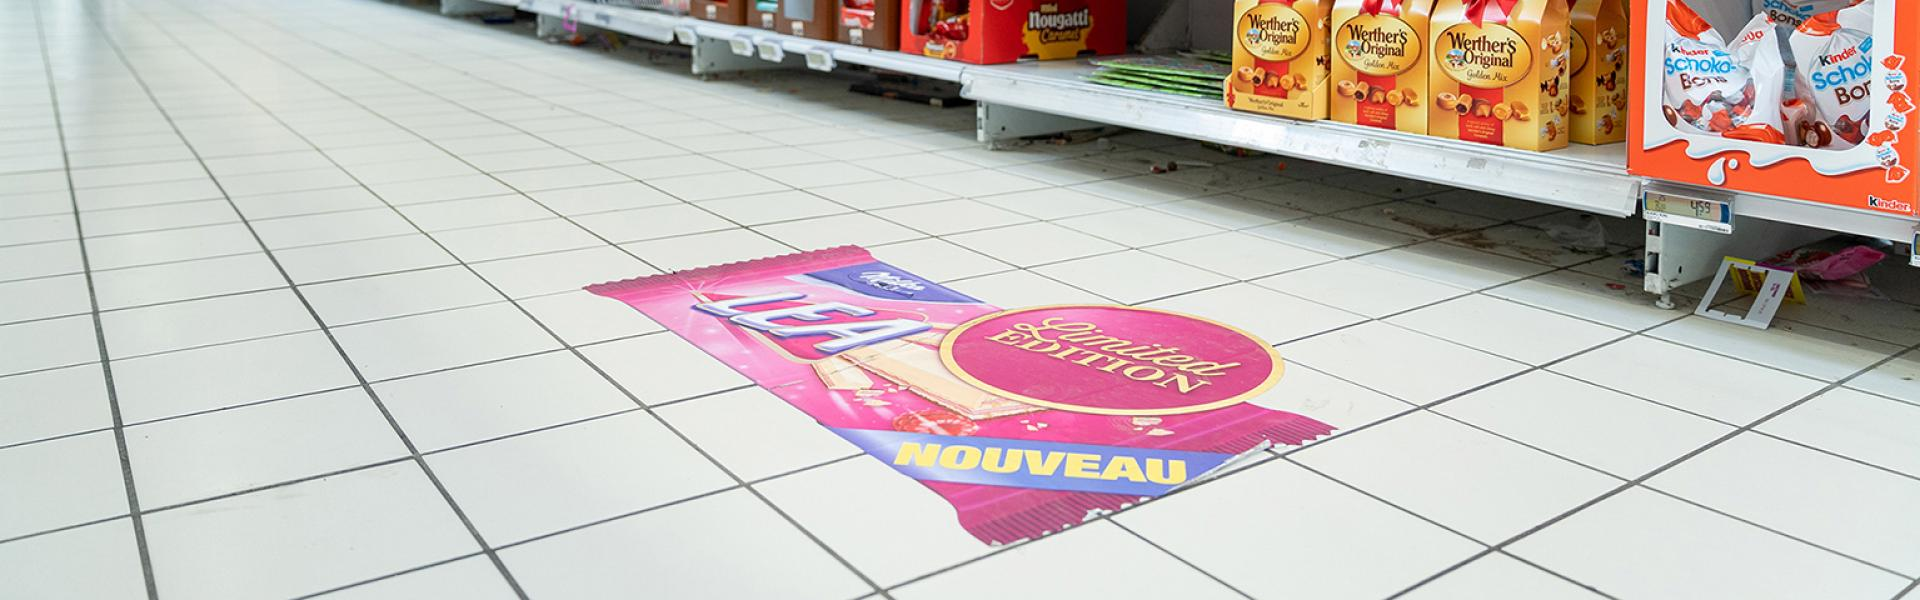 Vision Floor retail in-store communication floor sticker